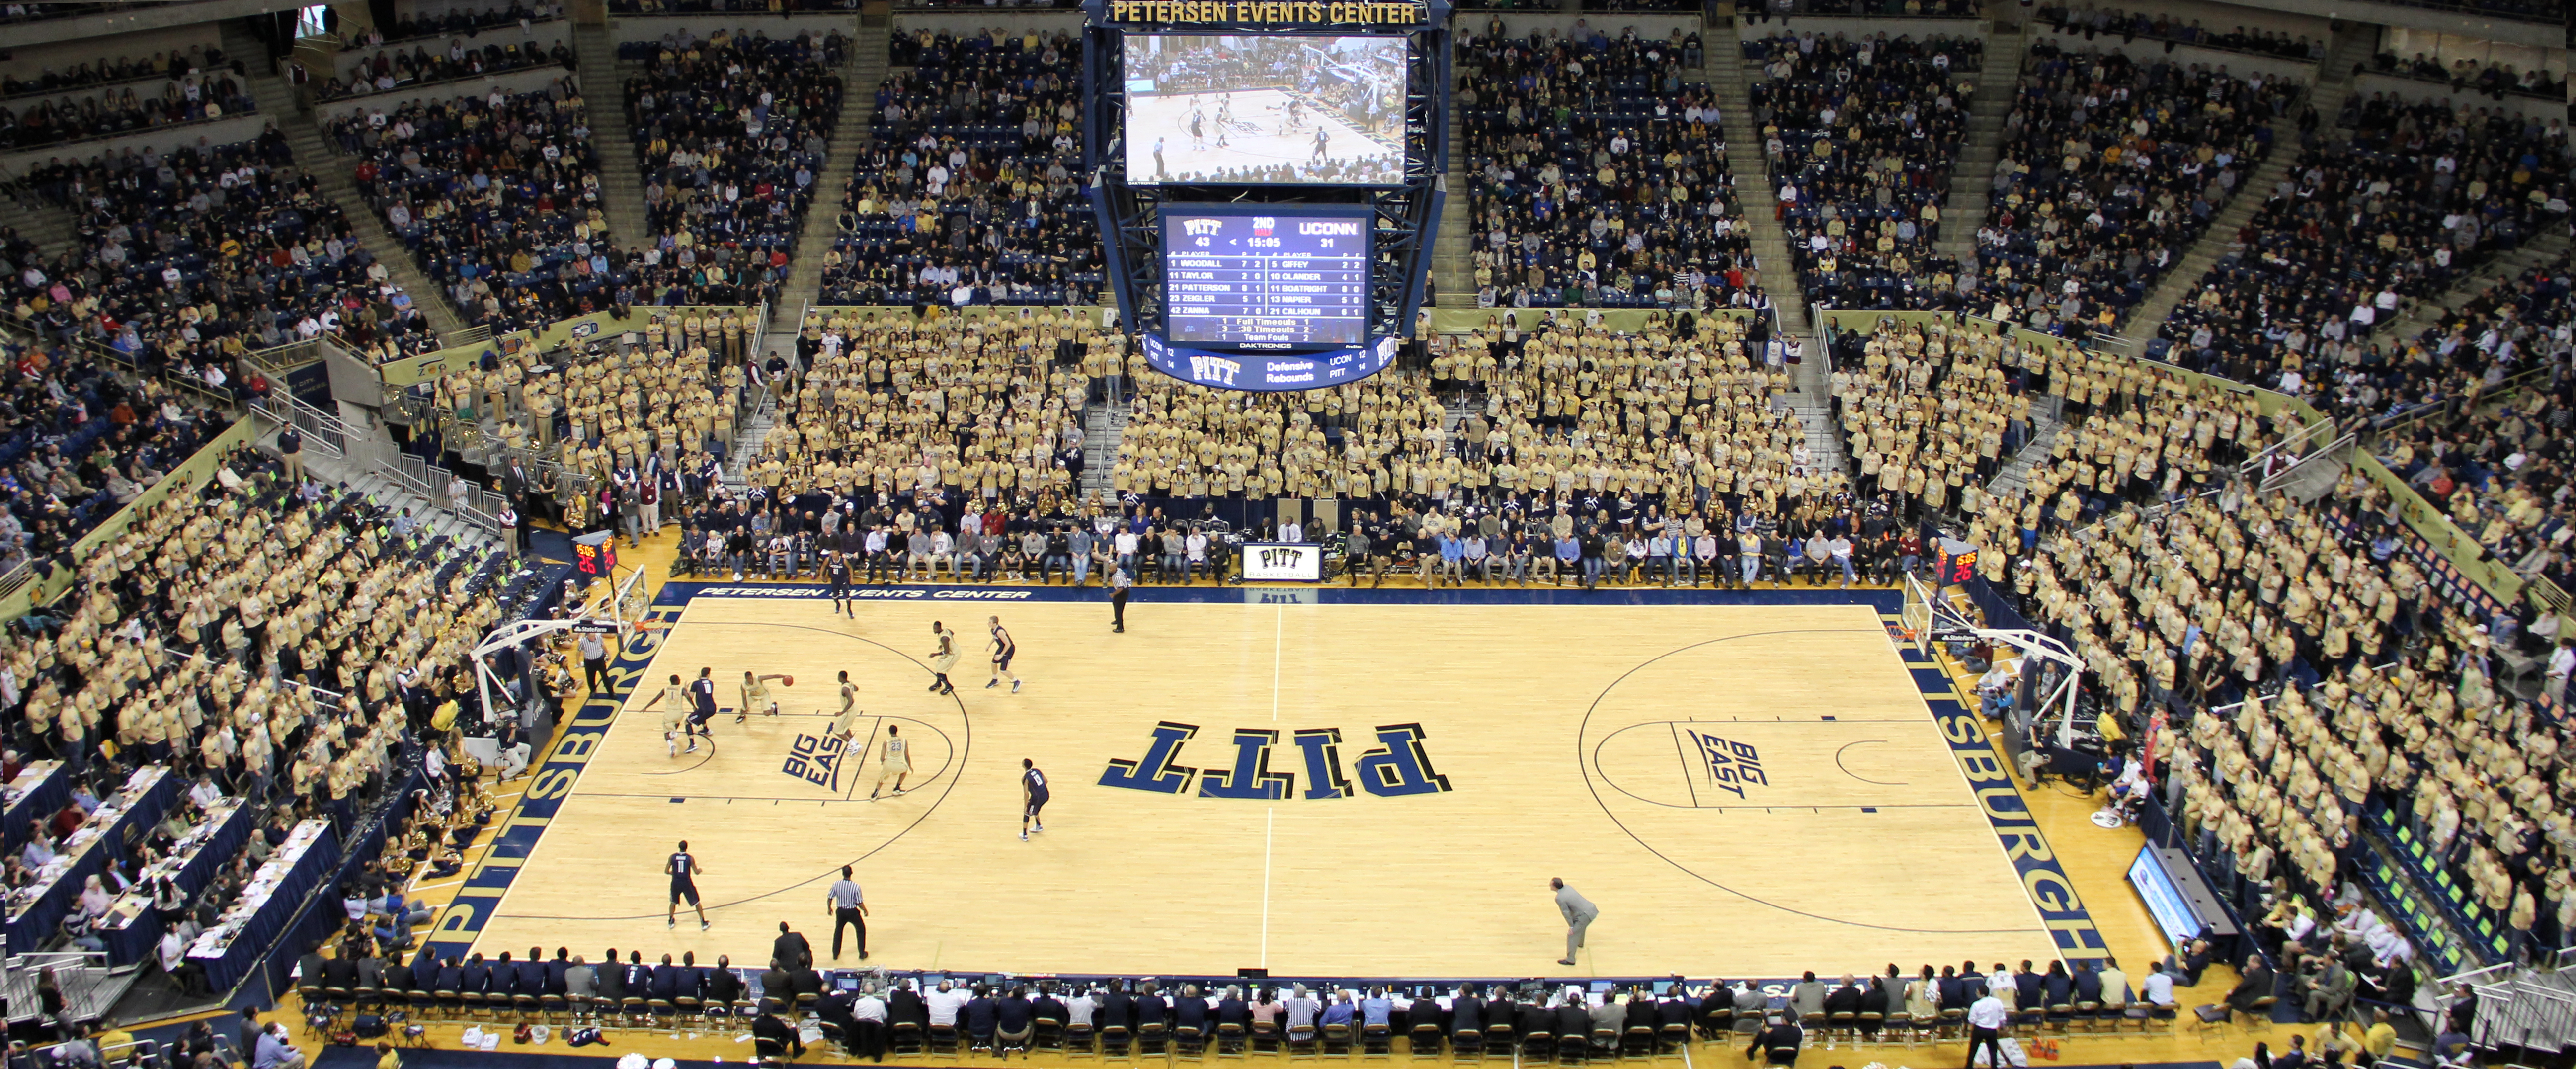 Gold Out on Saturday - Pitt Panthers #H2P